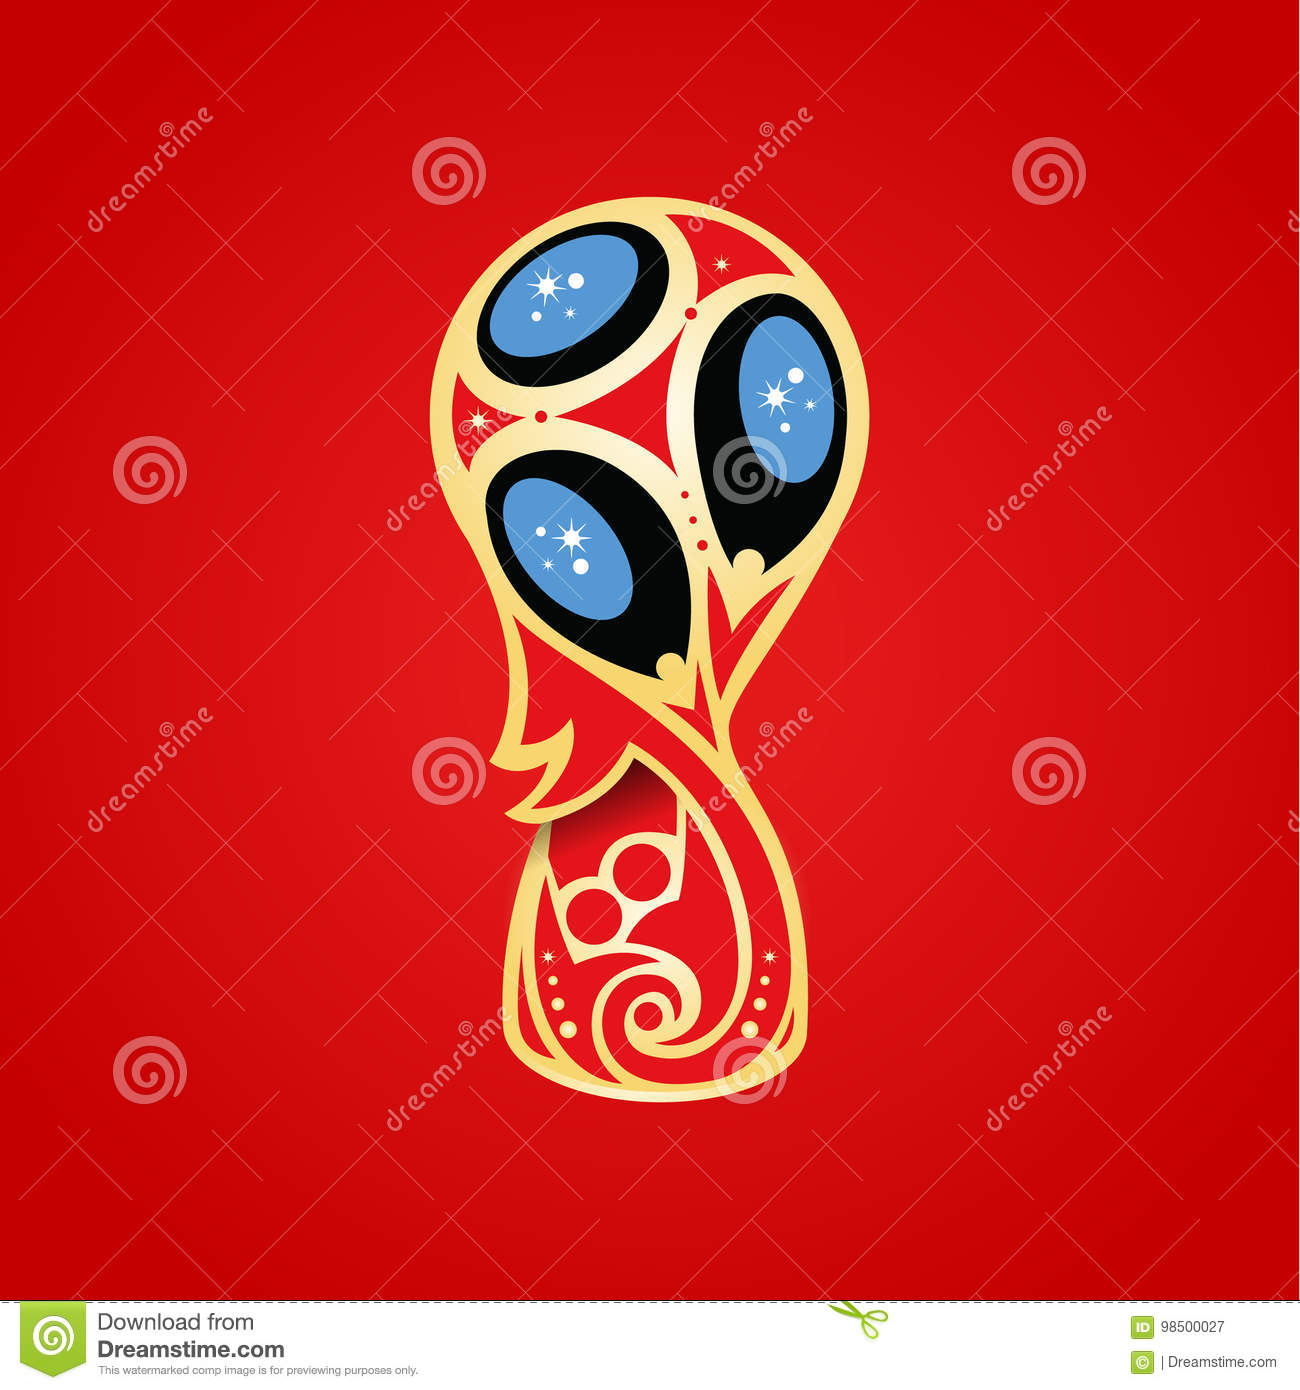 soccer world cup in russia 2018 stock vector illustration of